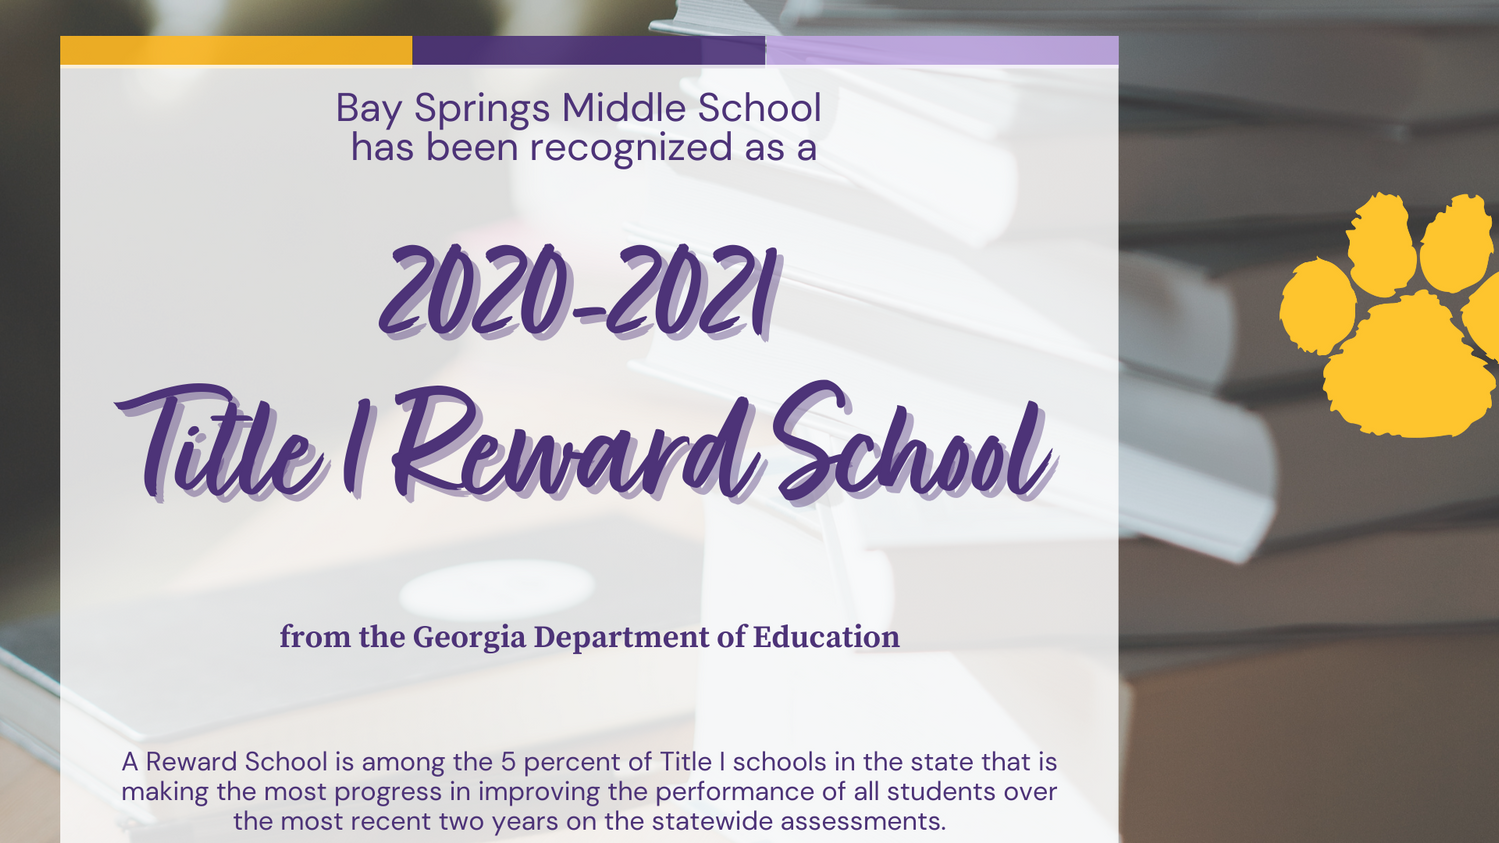 Bay Springs is Recognized as a Title I Reward School